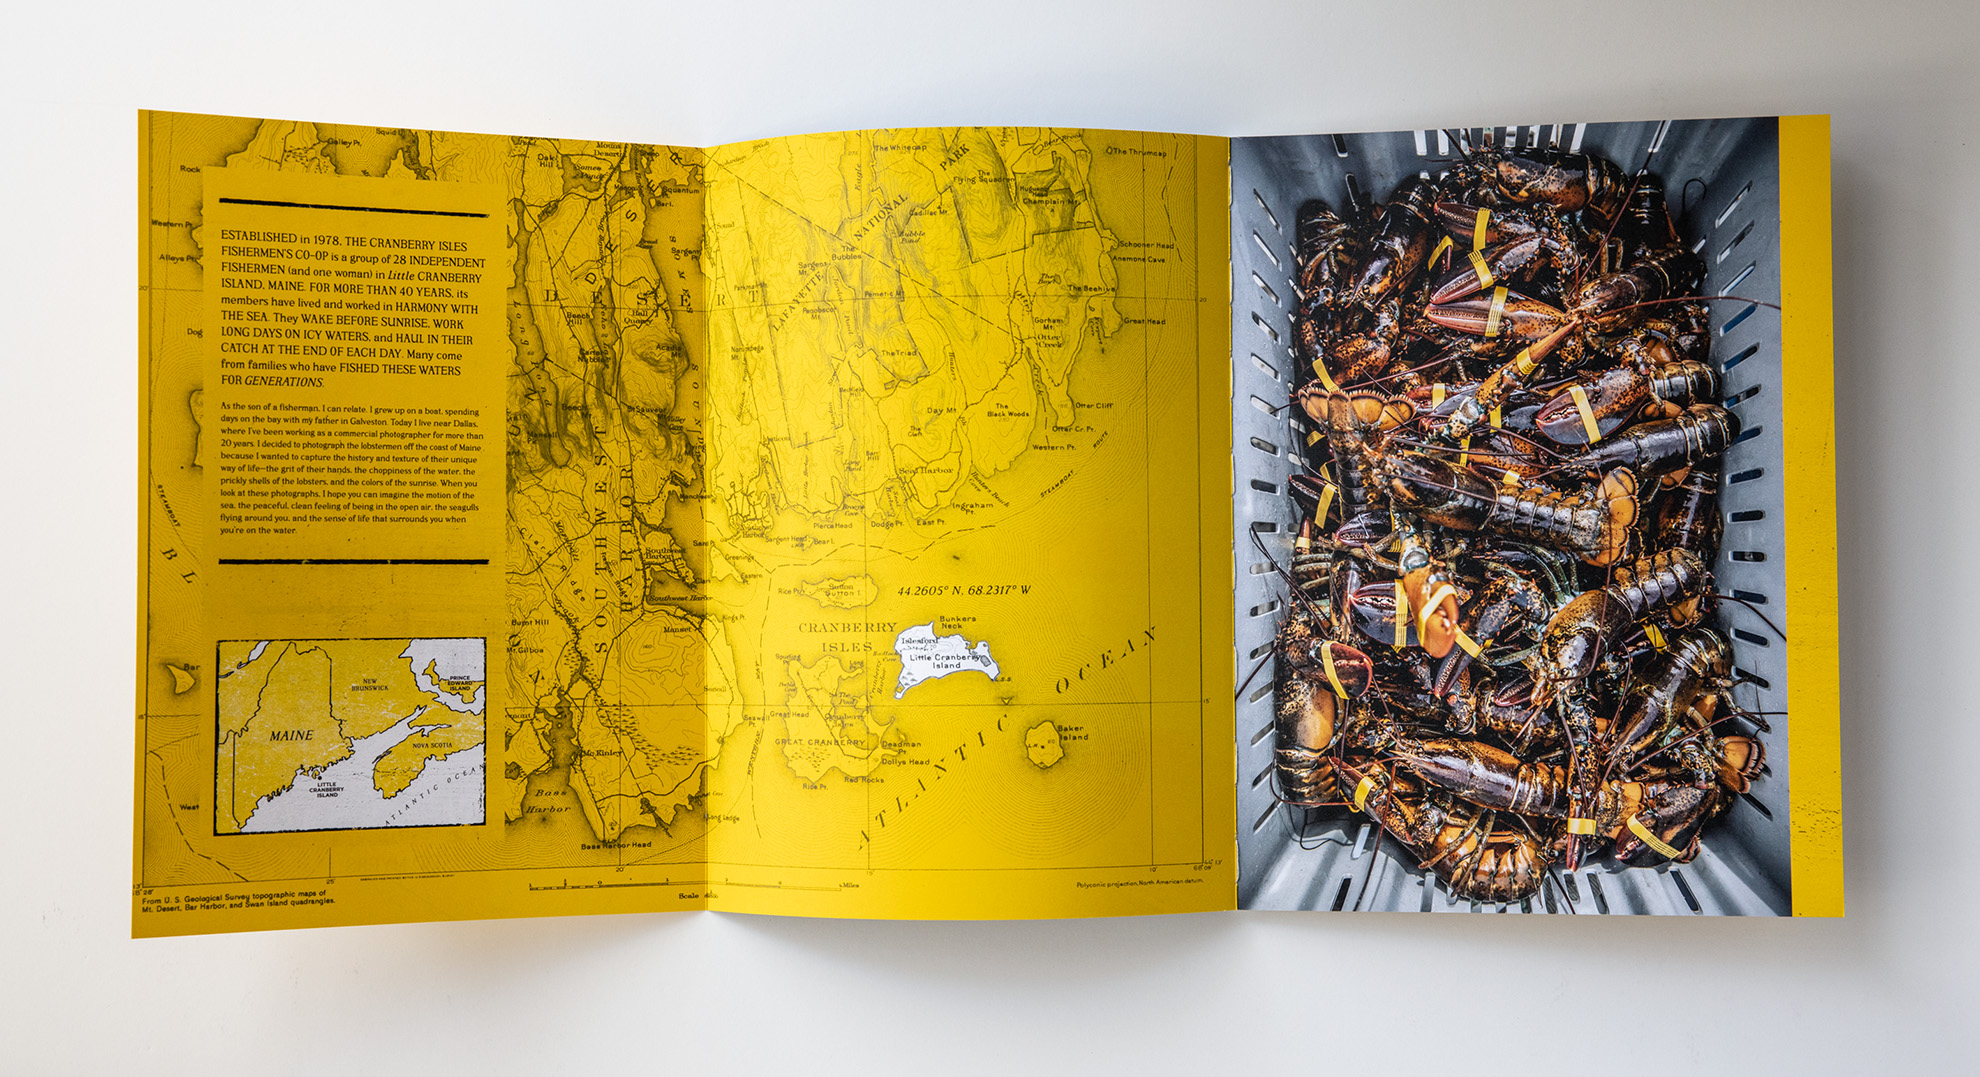 Tadd Myers released his booklet featuring the Lobstermen of Little Cranberry Island with a drawn map of the island and waters surrounding